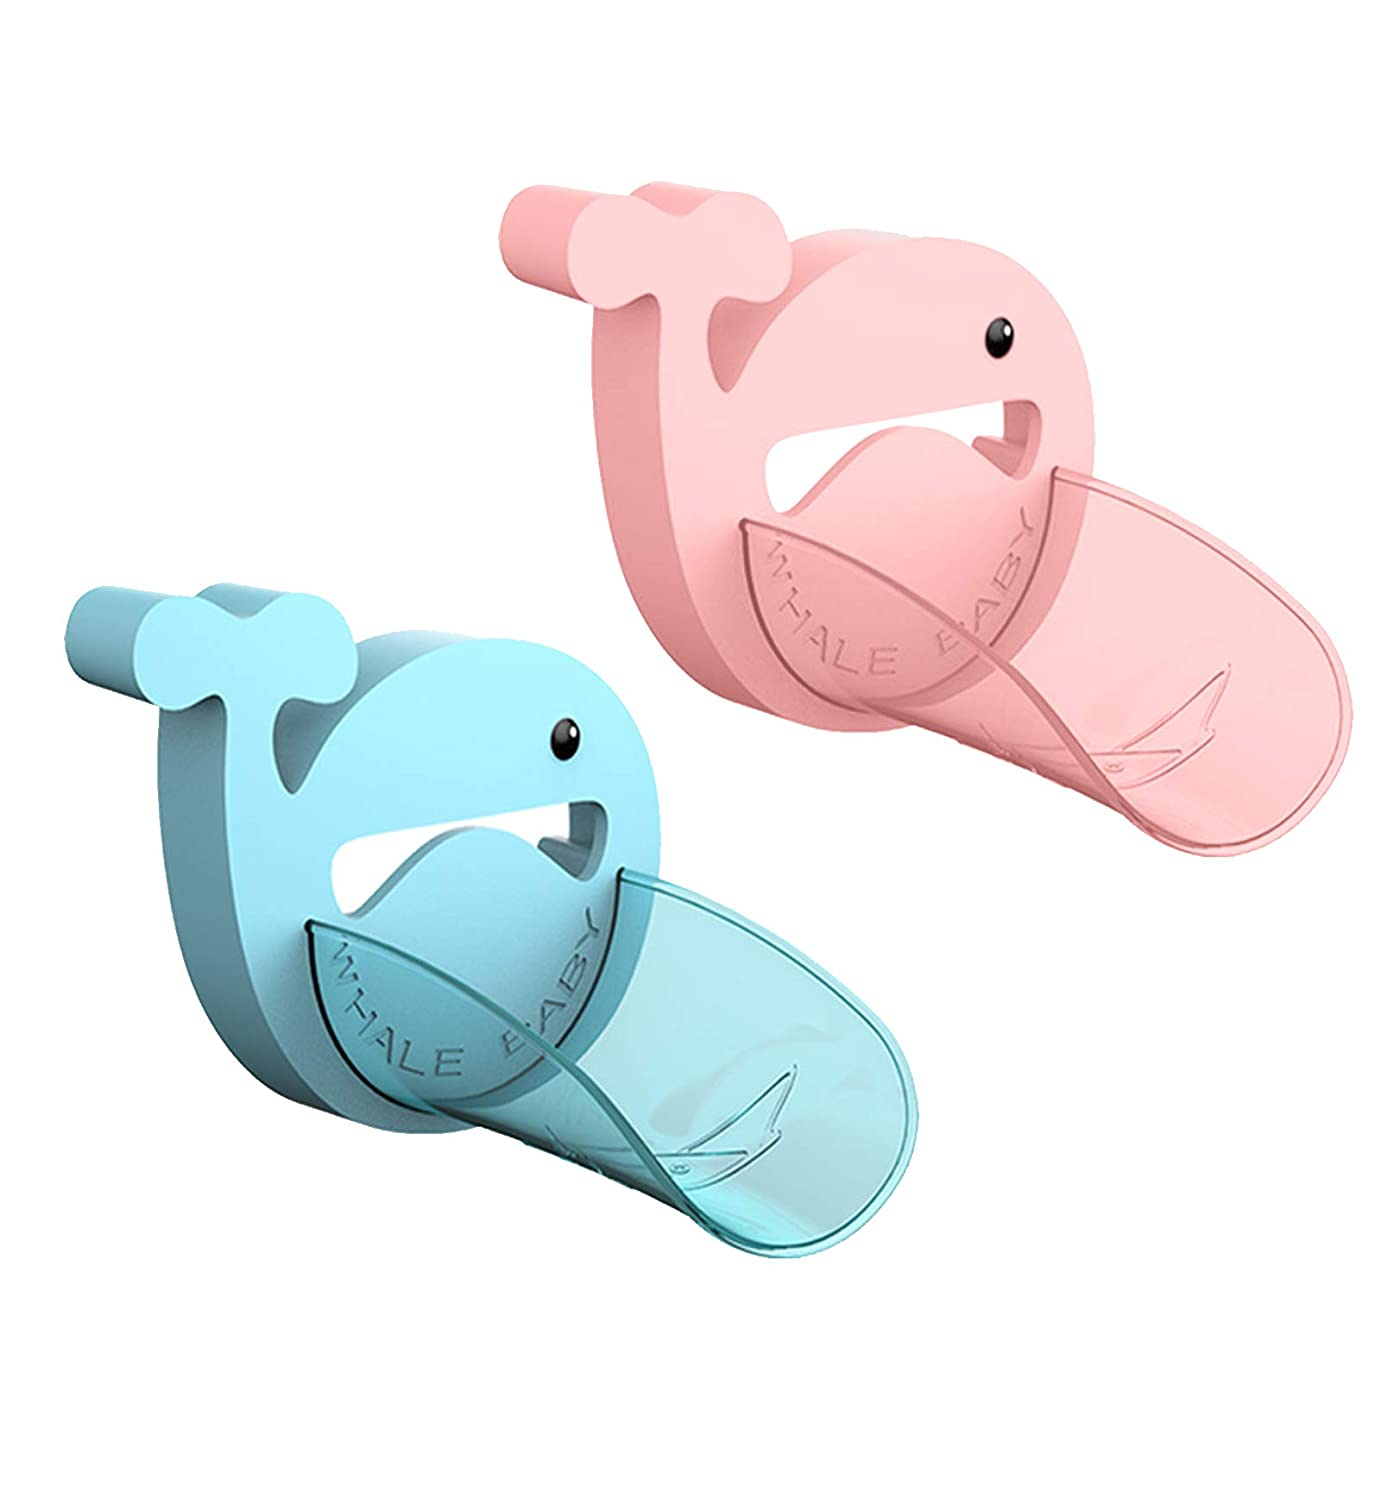 2PCS Faucet Extender, Blue and Pink Faucet Extension with Cartoon Crab Faucet Cover, Hand Washing Device for Children Toddlers Kids Babies